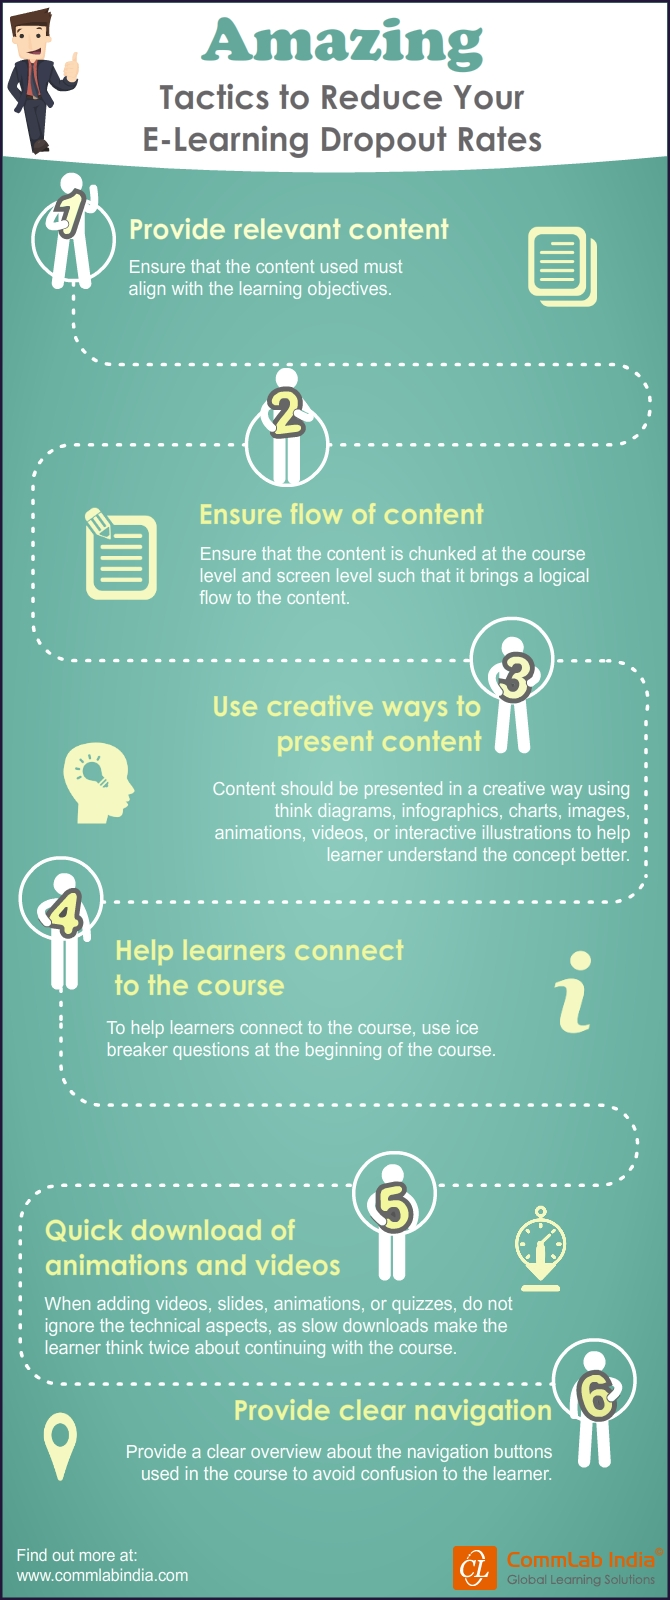 Amazing Tactics to Reduce Your E-Learning Dropout Rates [Infographic]